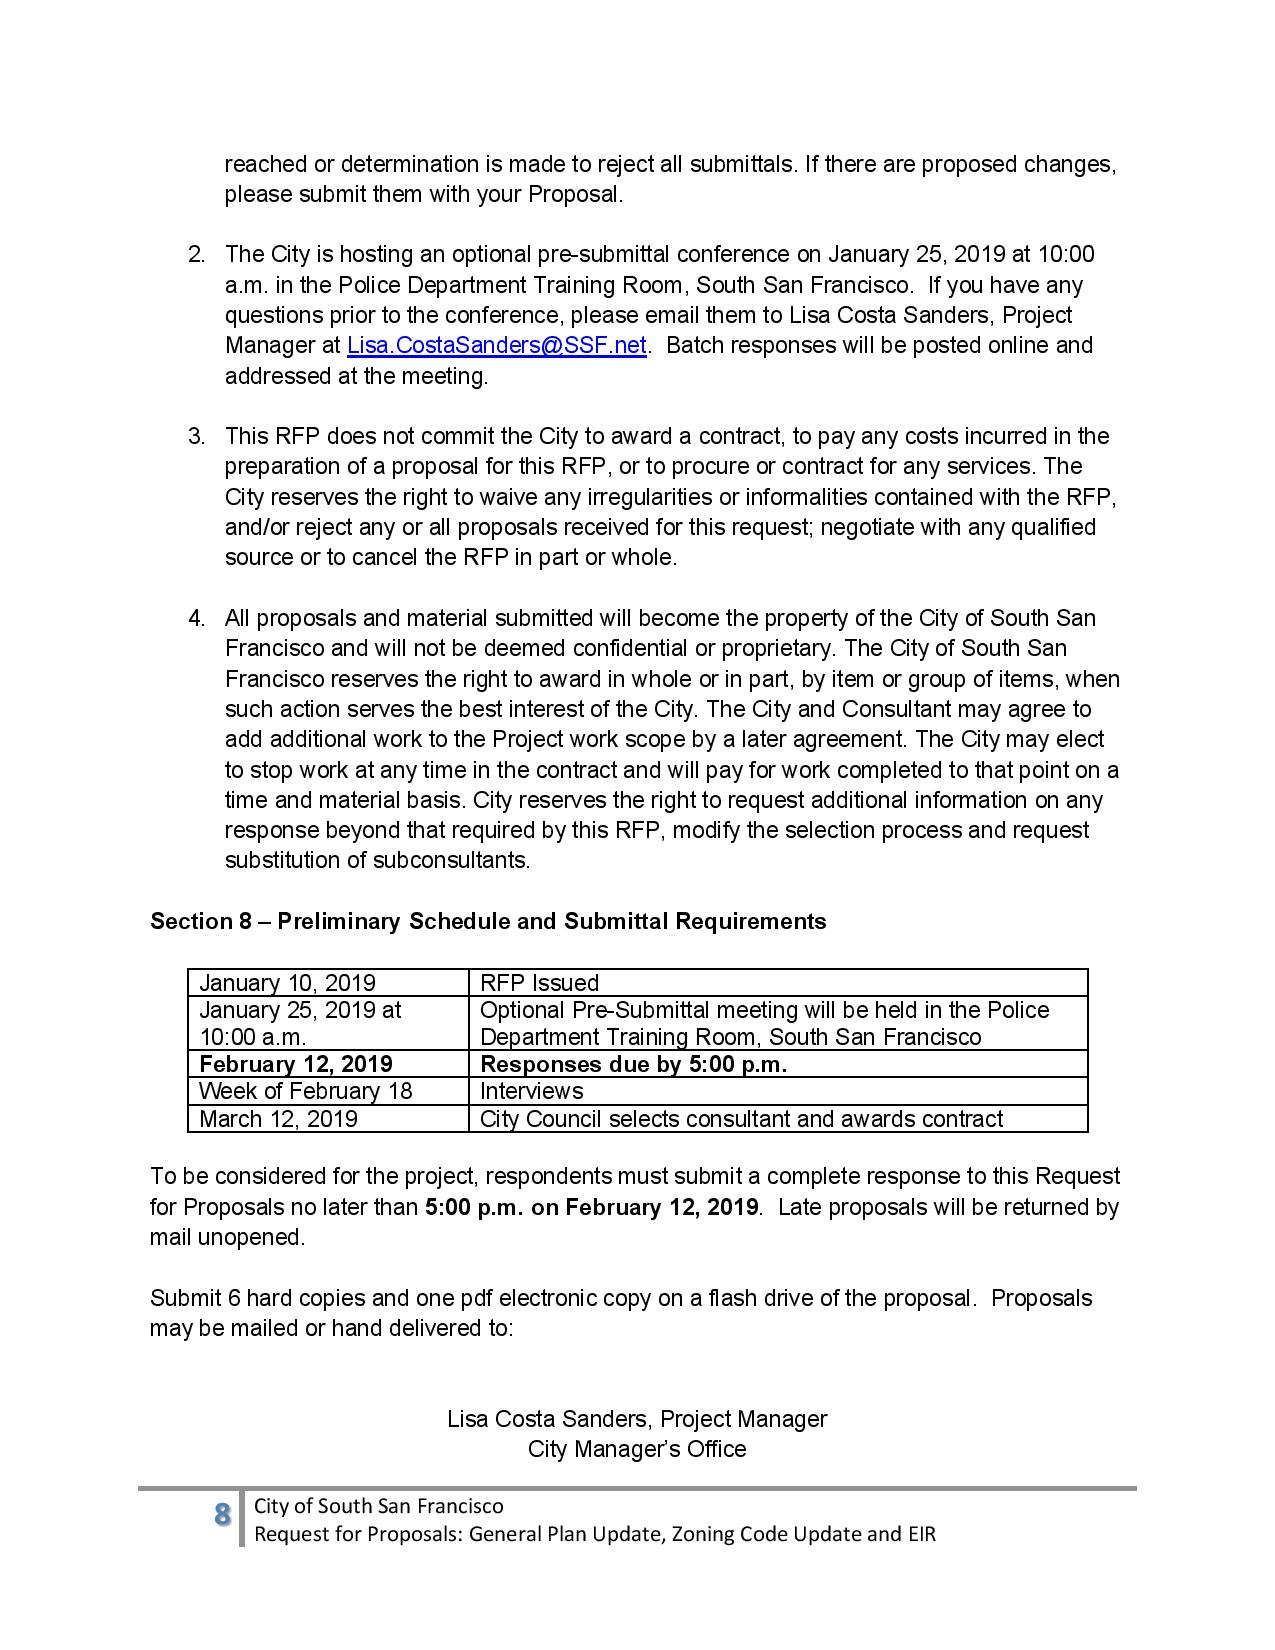 General Plan Update Request for Proposal, Add 2 Members